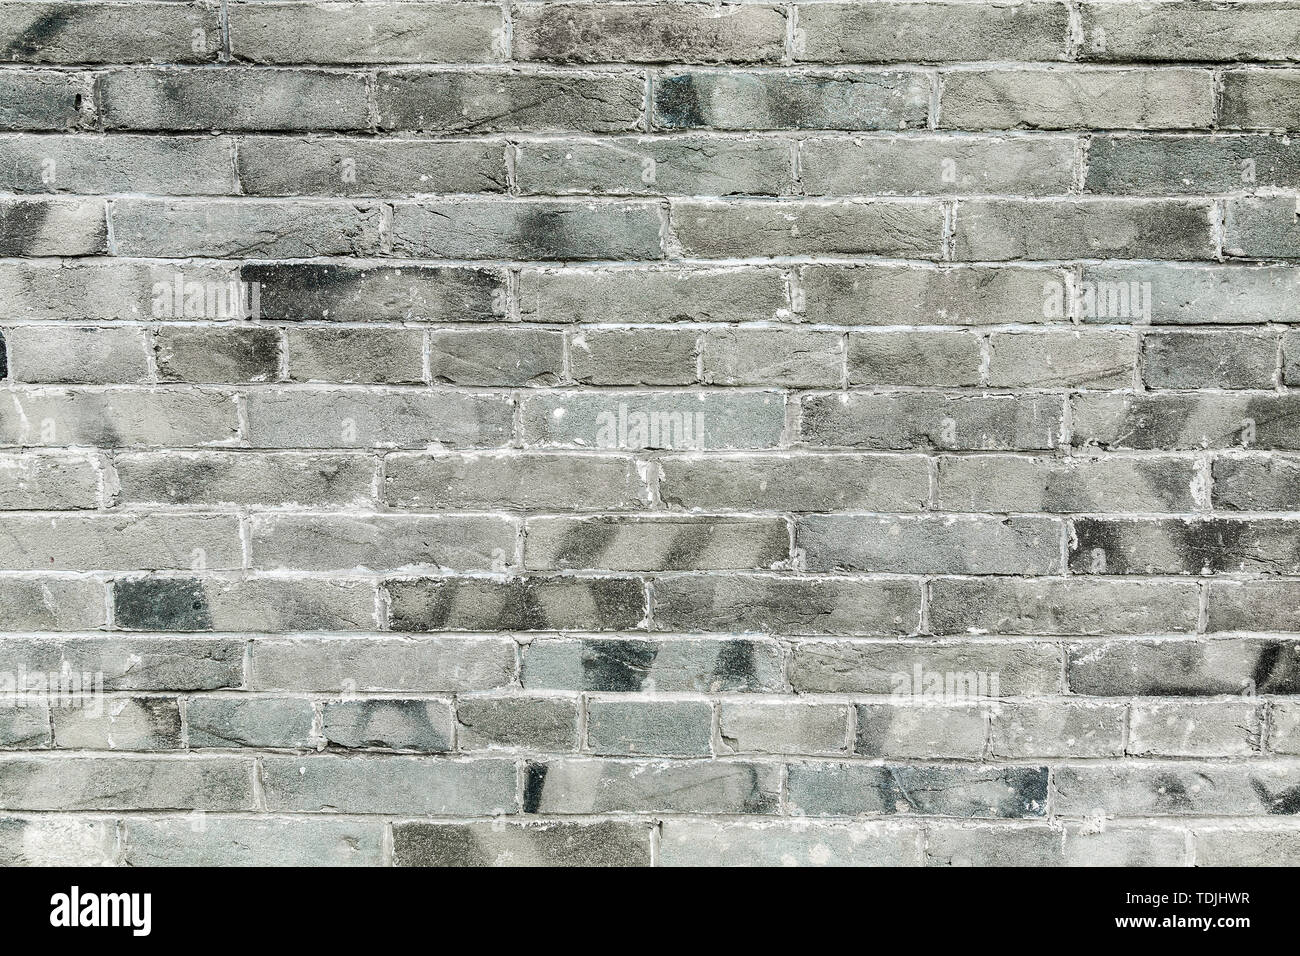 Green Brick Brick Wall Texture Background Hd Material Stock Photo Alamy